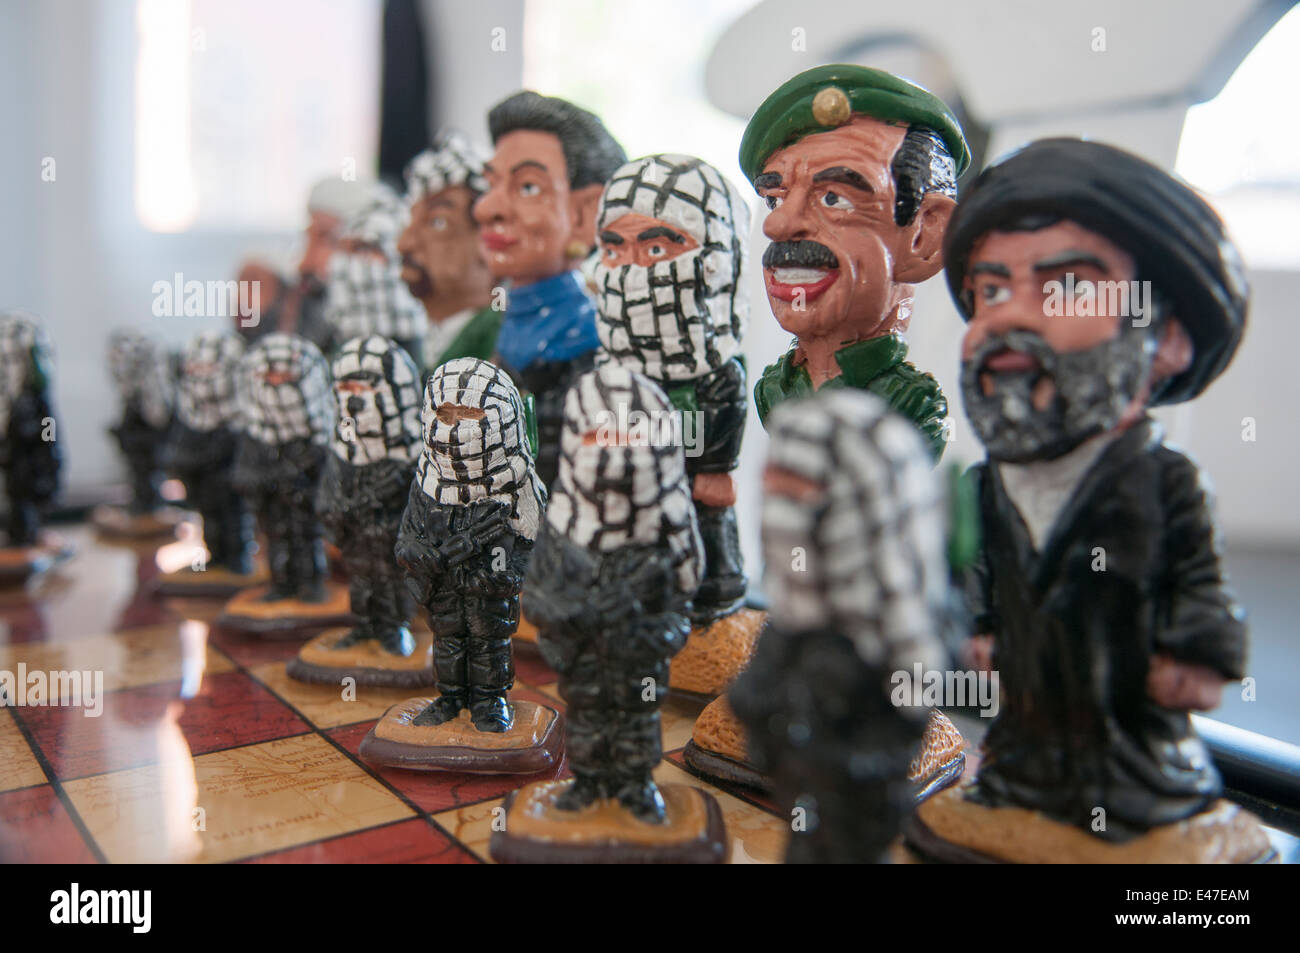 Middle East political leaders with Jihadists as part of an American anti-terrorist themed chess set - Stock Image